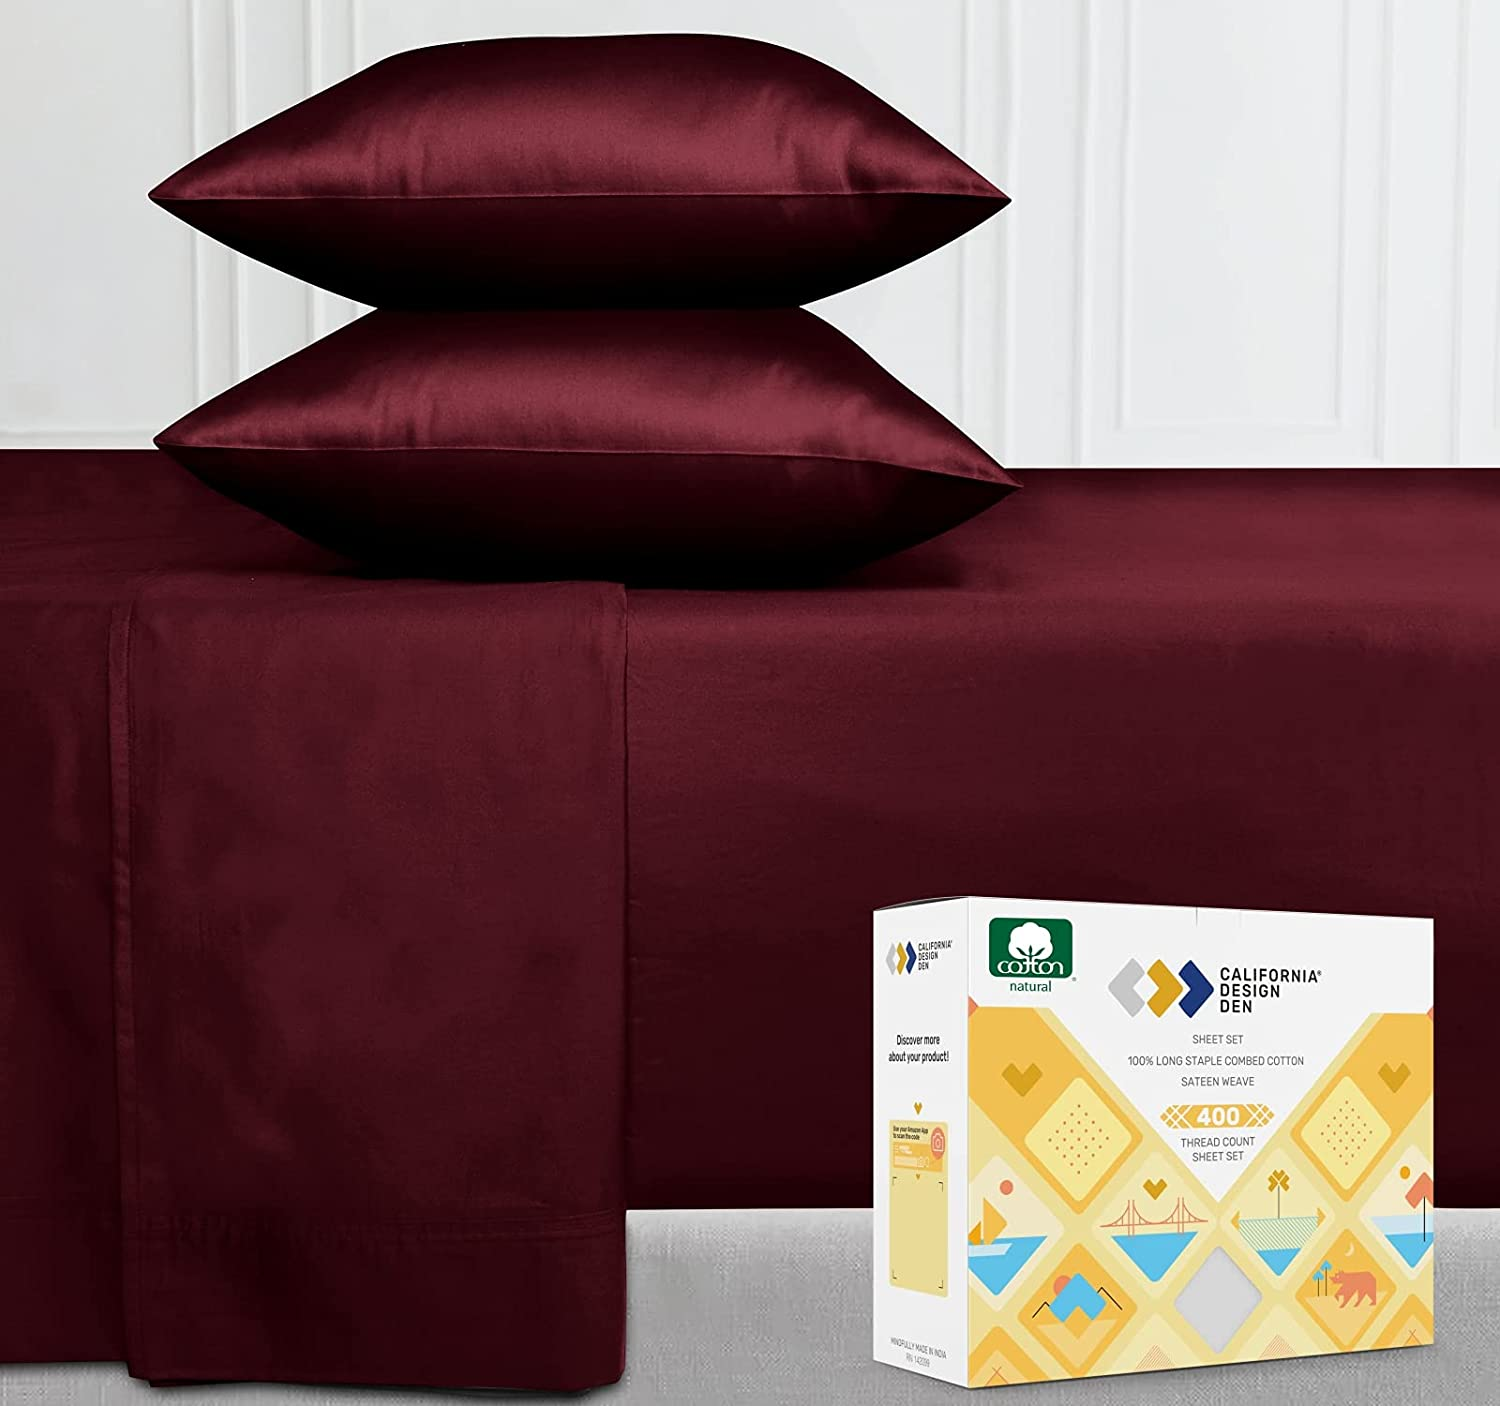 Pure Cotton Twin Sheet Set - Burgundy Red Wine 400 Thread Count Sheets, Breathable Sateen Weave 3 Piece Bedding Set, Elasticized Deep Pocket Fits Low Profile Foam and Tall Mattresses